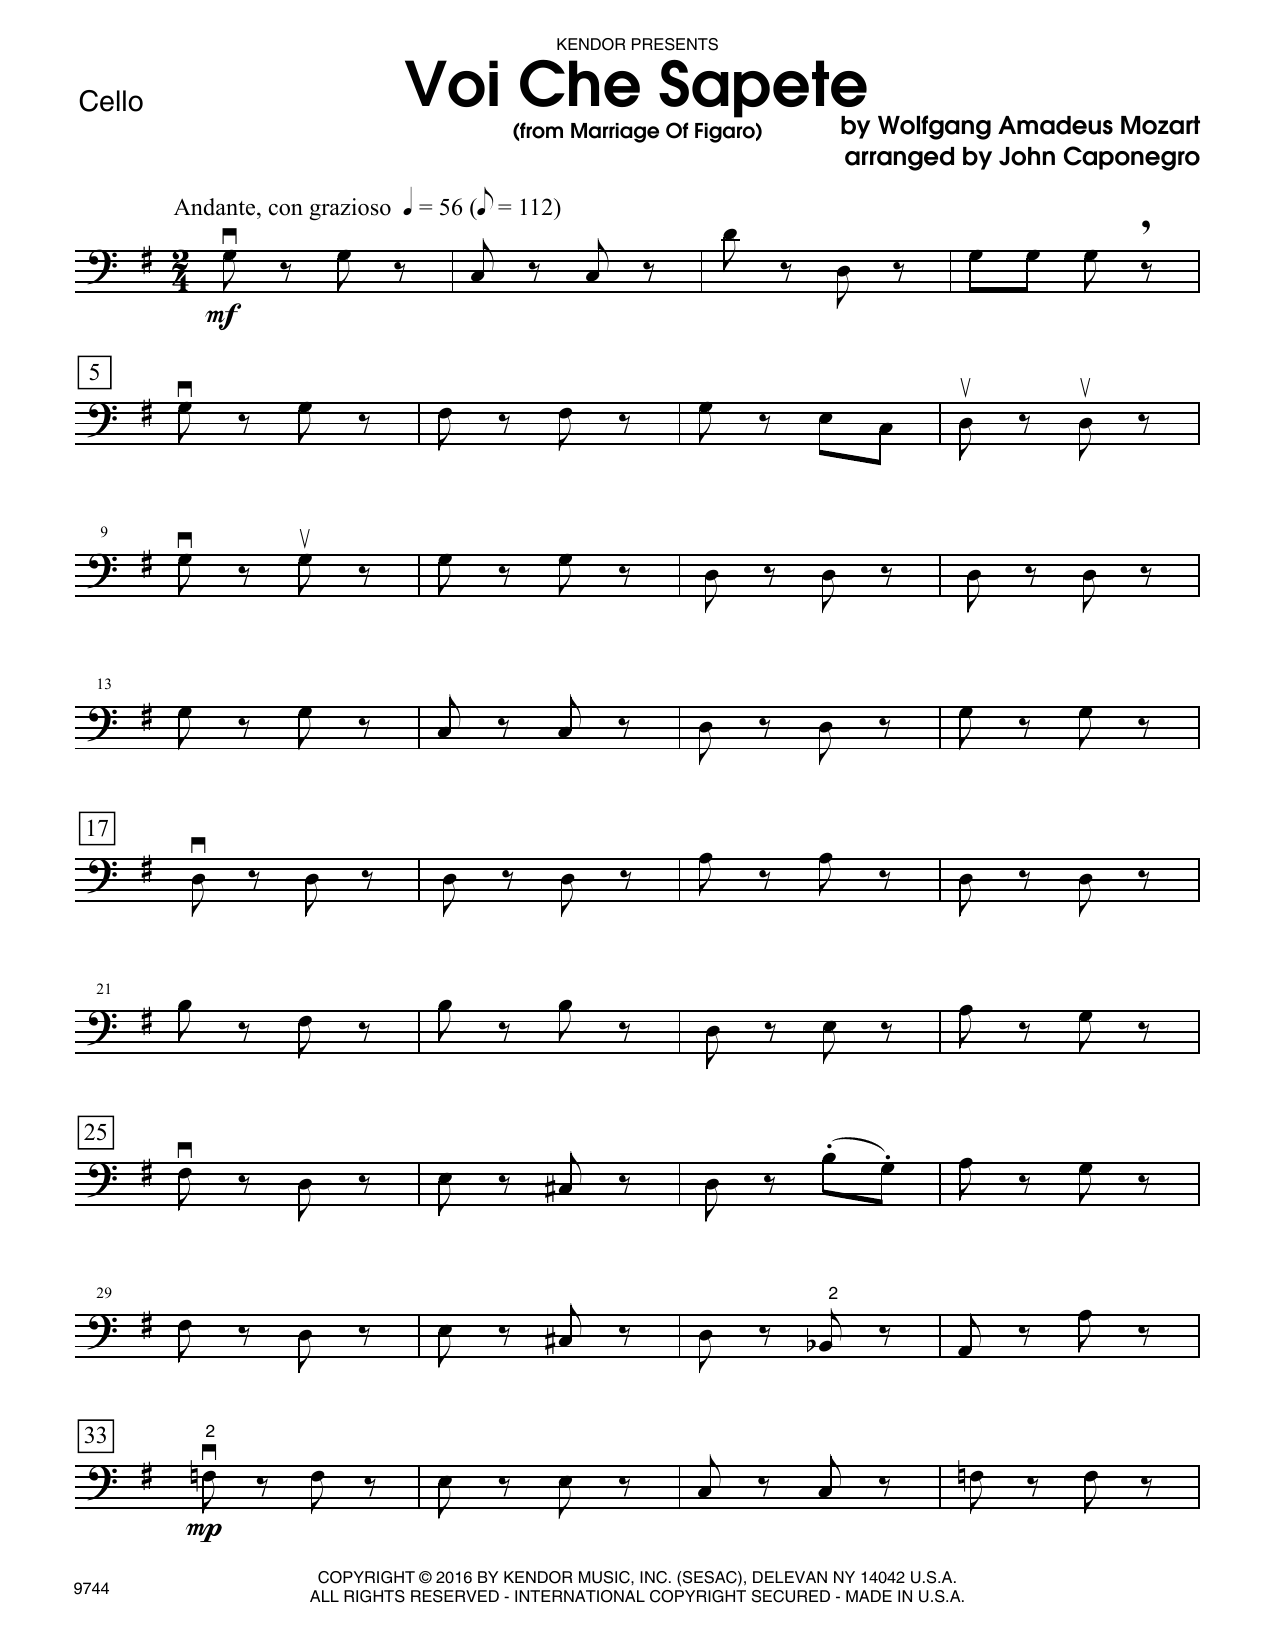 Voi Che Sapete (from Marriage Of Figaro) - Cello Sheet Music